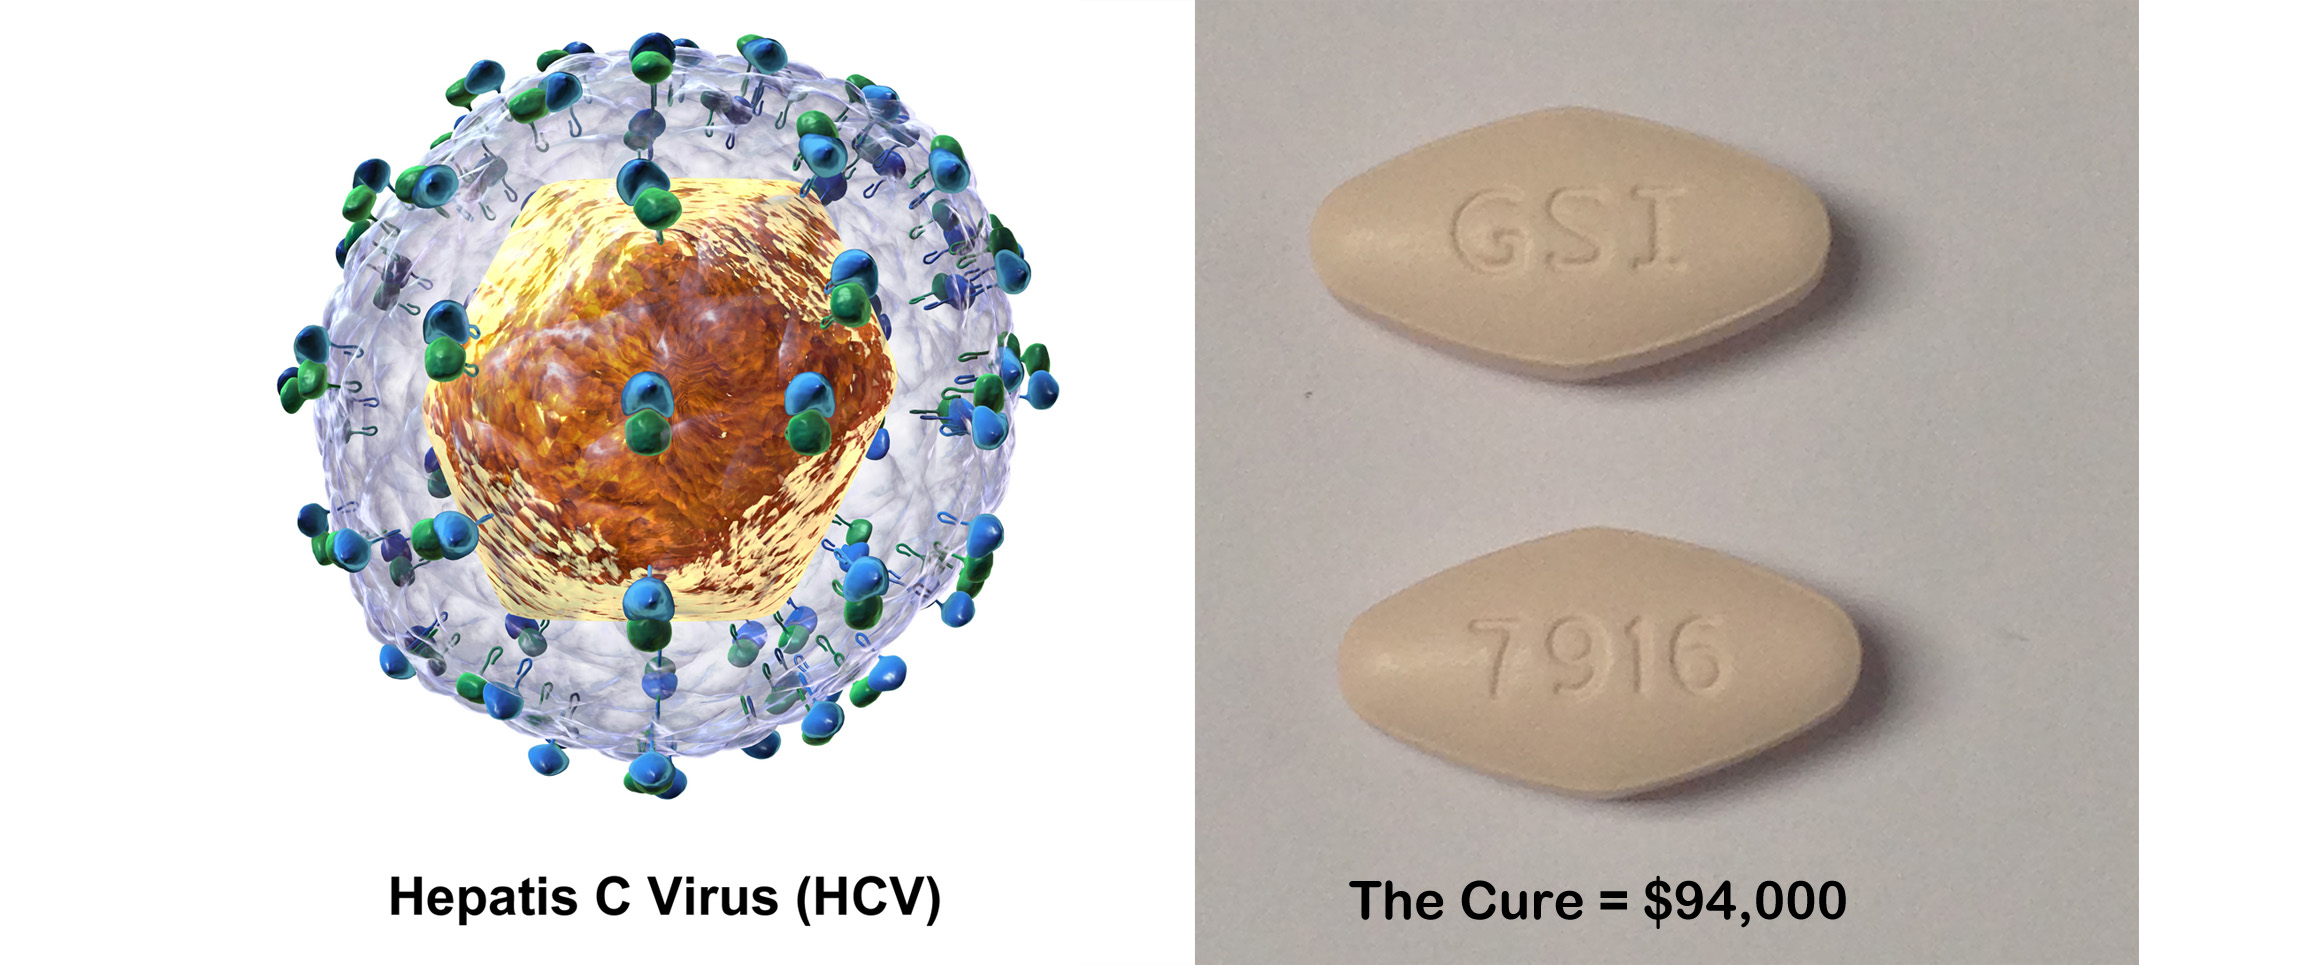 HCV image by Bruce Blaus (Own work) [CC BY-SA 4.0], via Wikimedia Commons; The Cure image by Richard Kontas